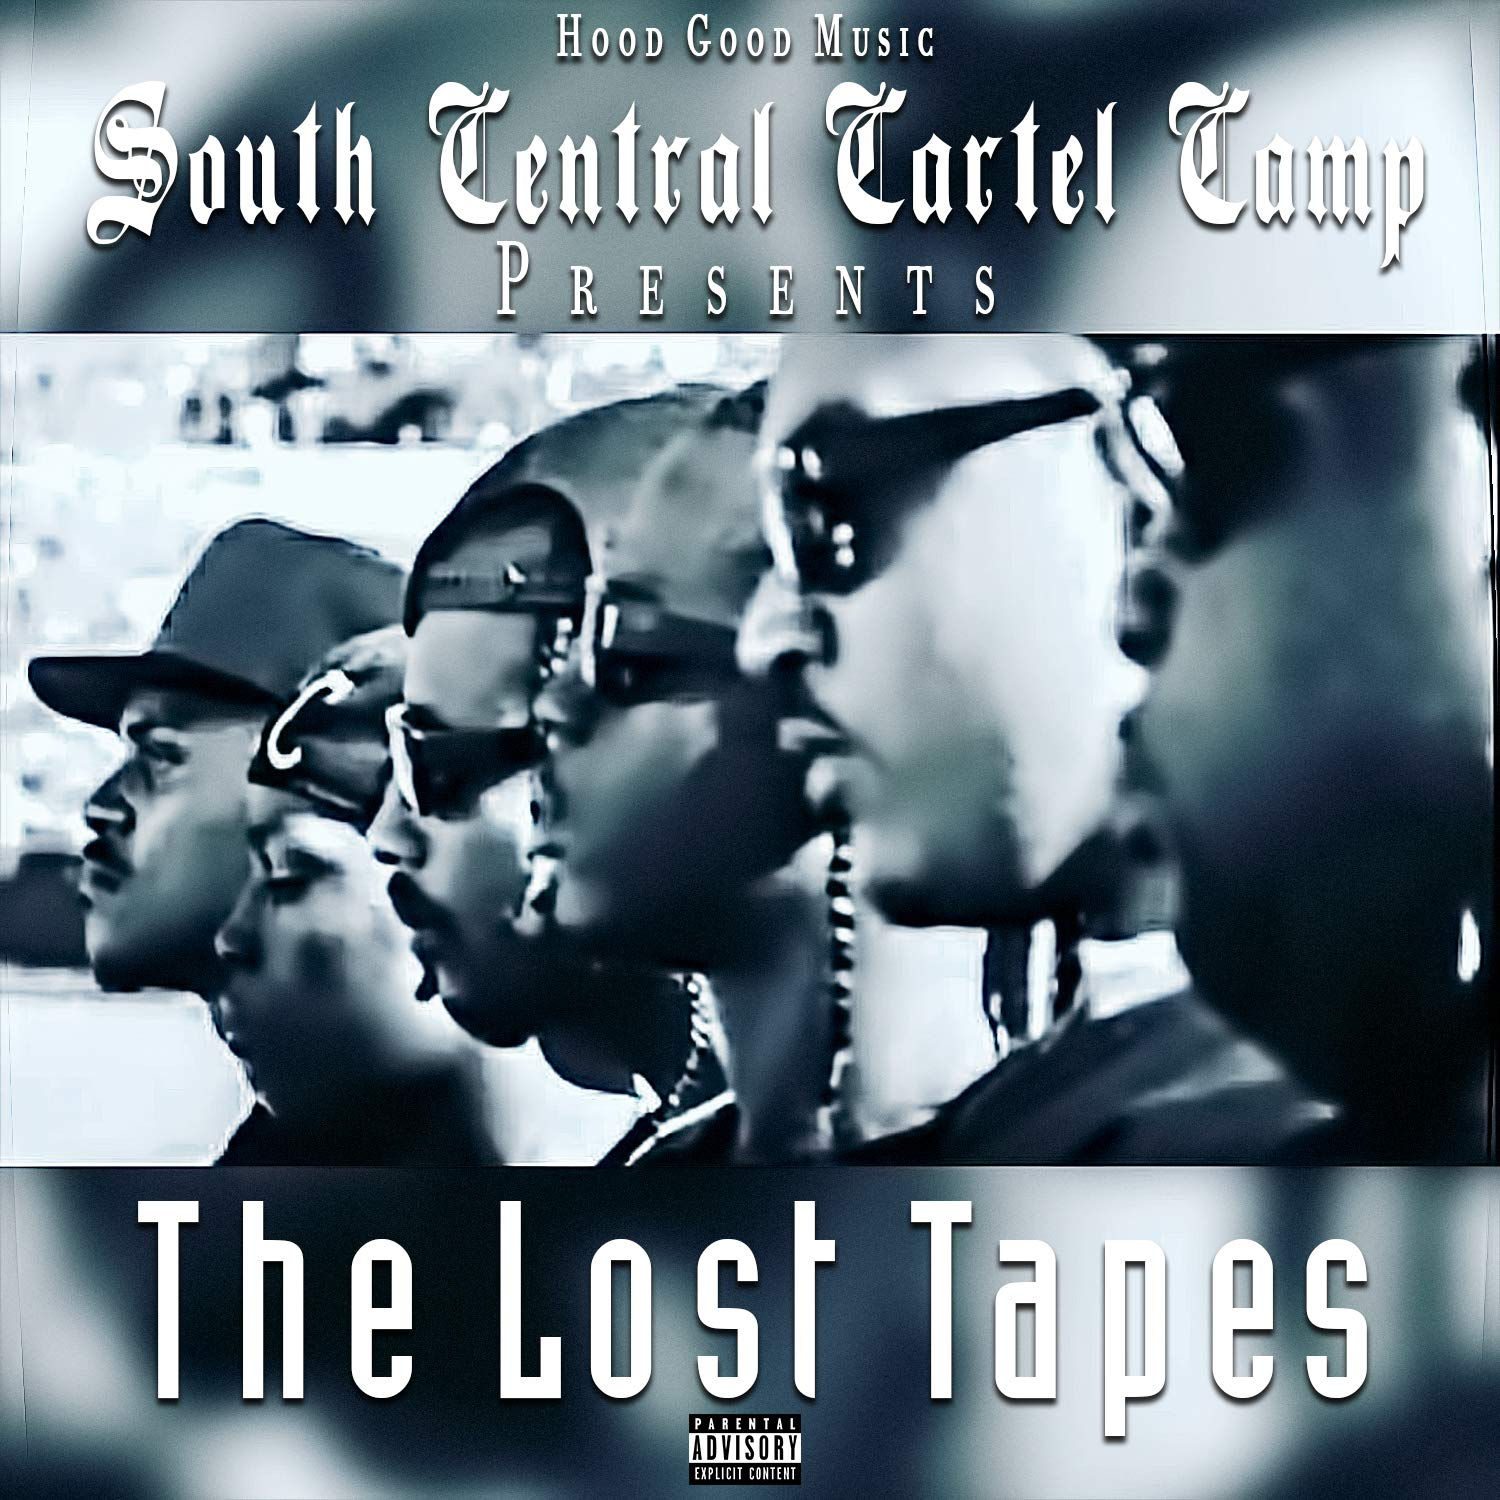 VA - South Central Cartel Camp-The Lost Tape Vol. 1 (2020) [FLAC] Download